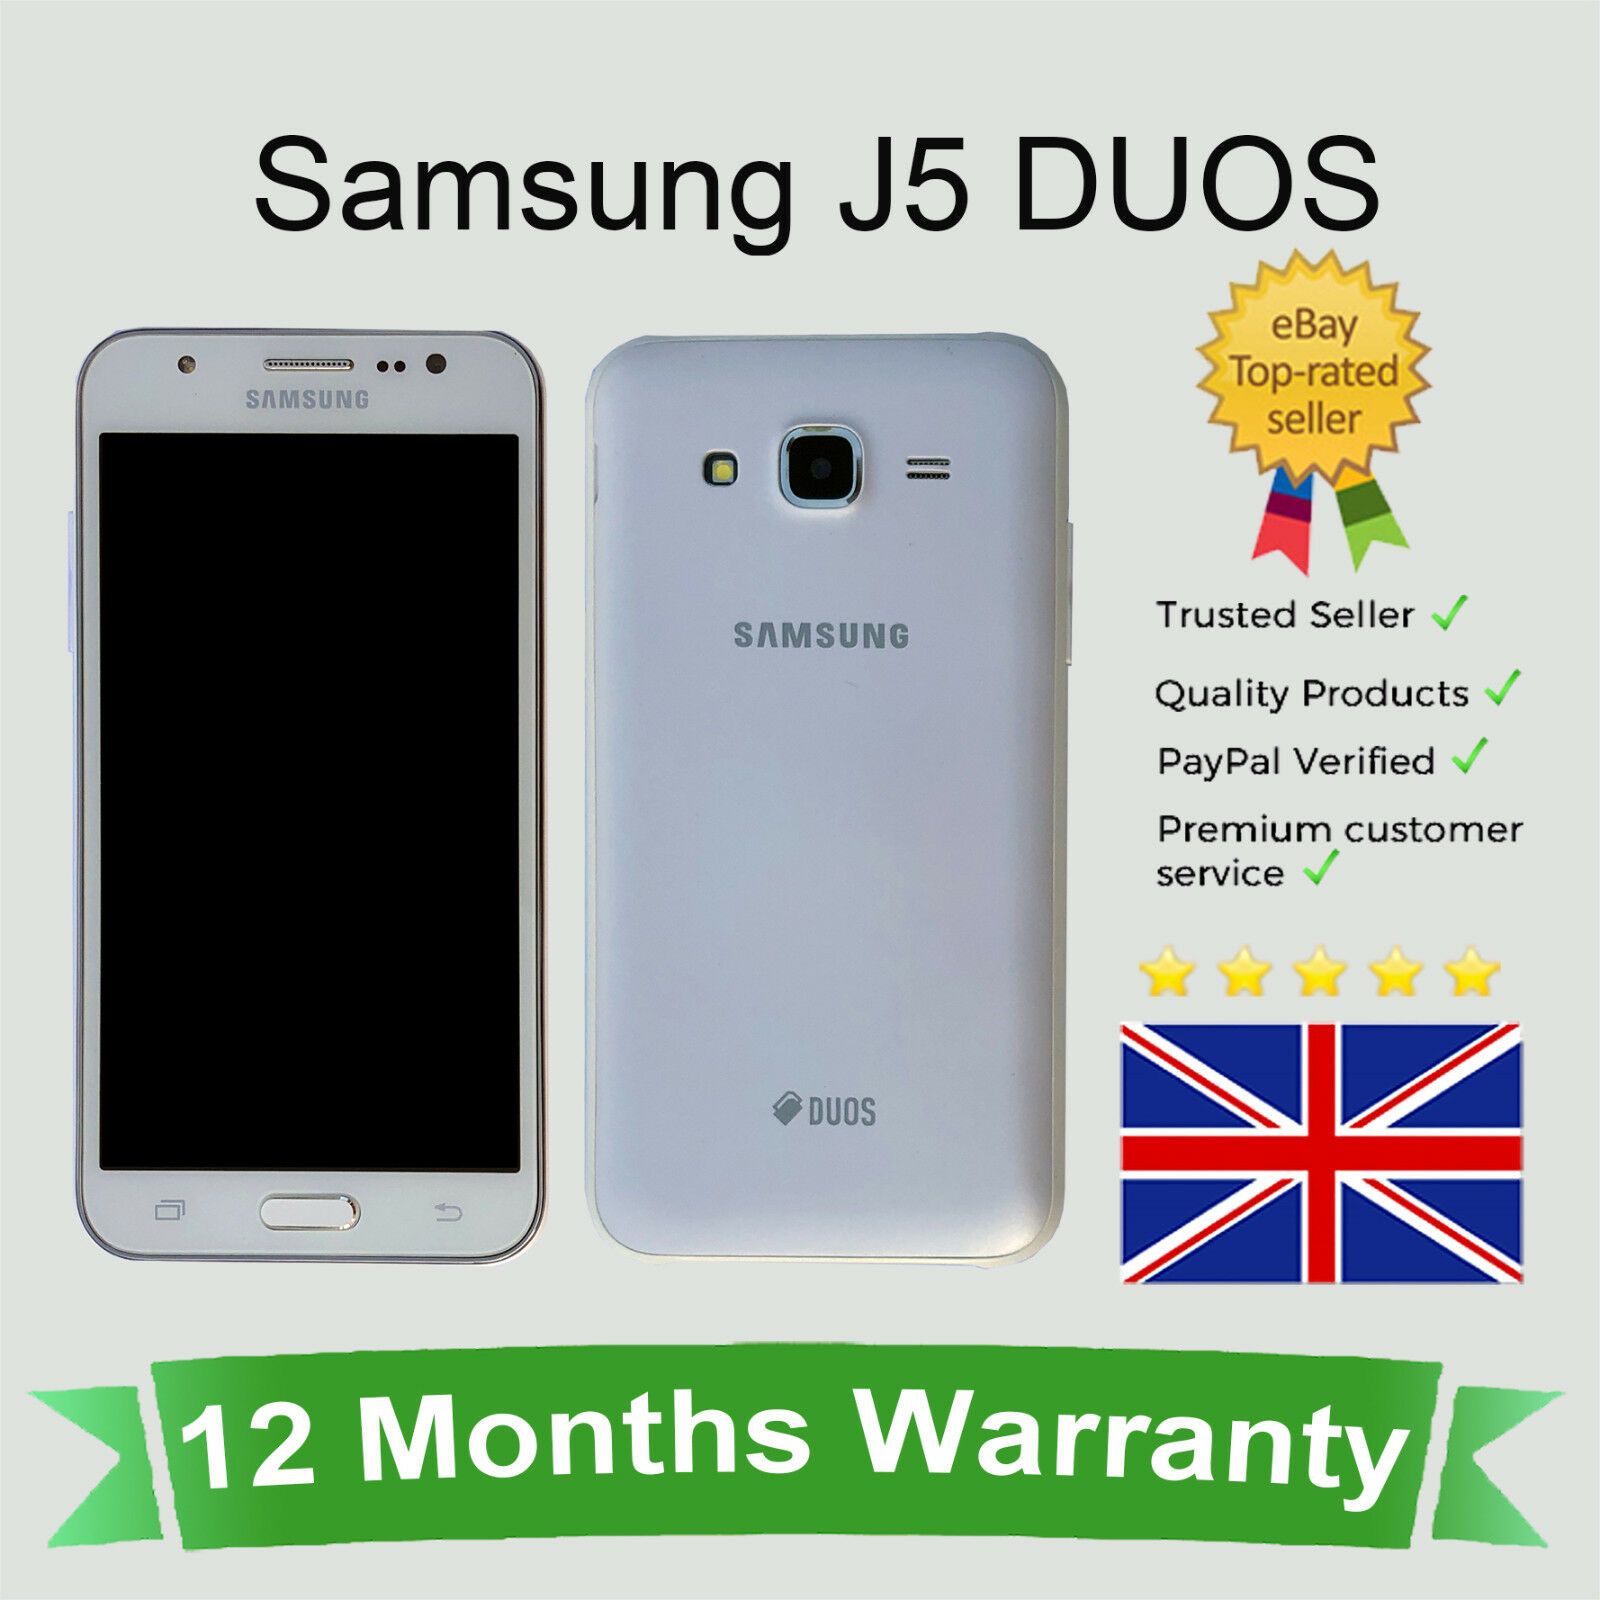 Android Phone - Unlocked Samsung Galaxy J5 / J500 Dual SIM Android Smart Mobile Phone 16GB White